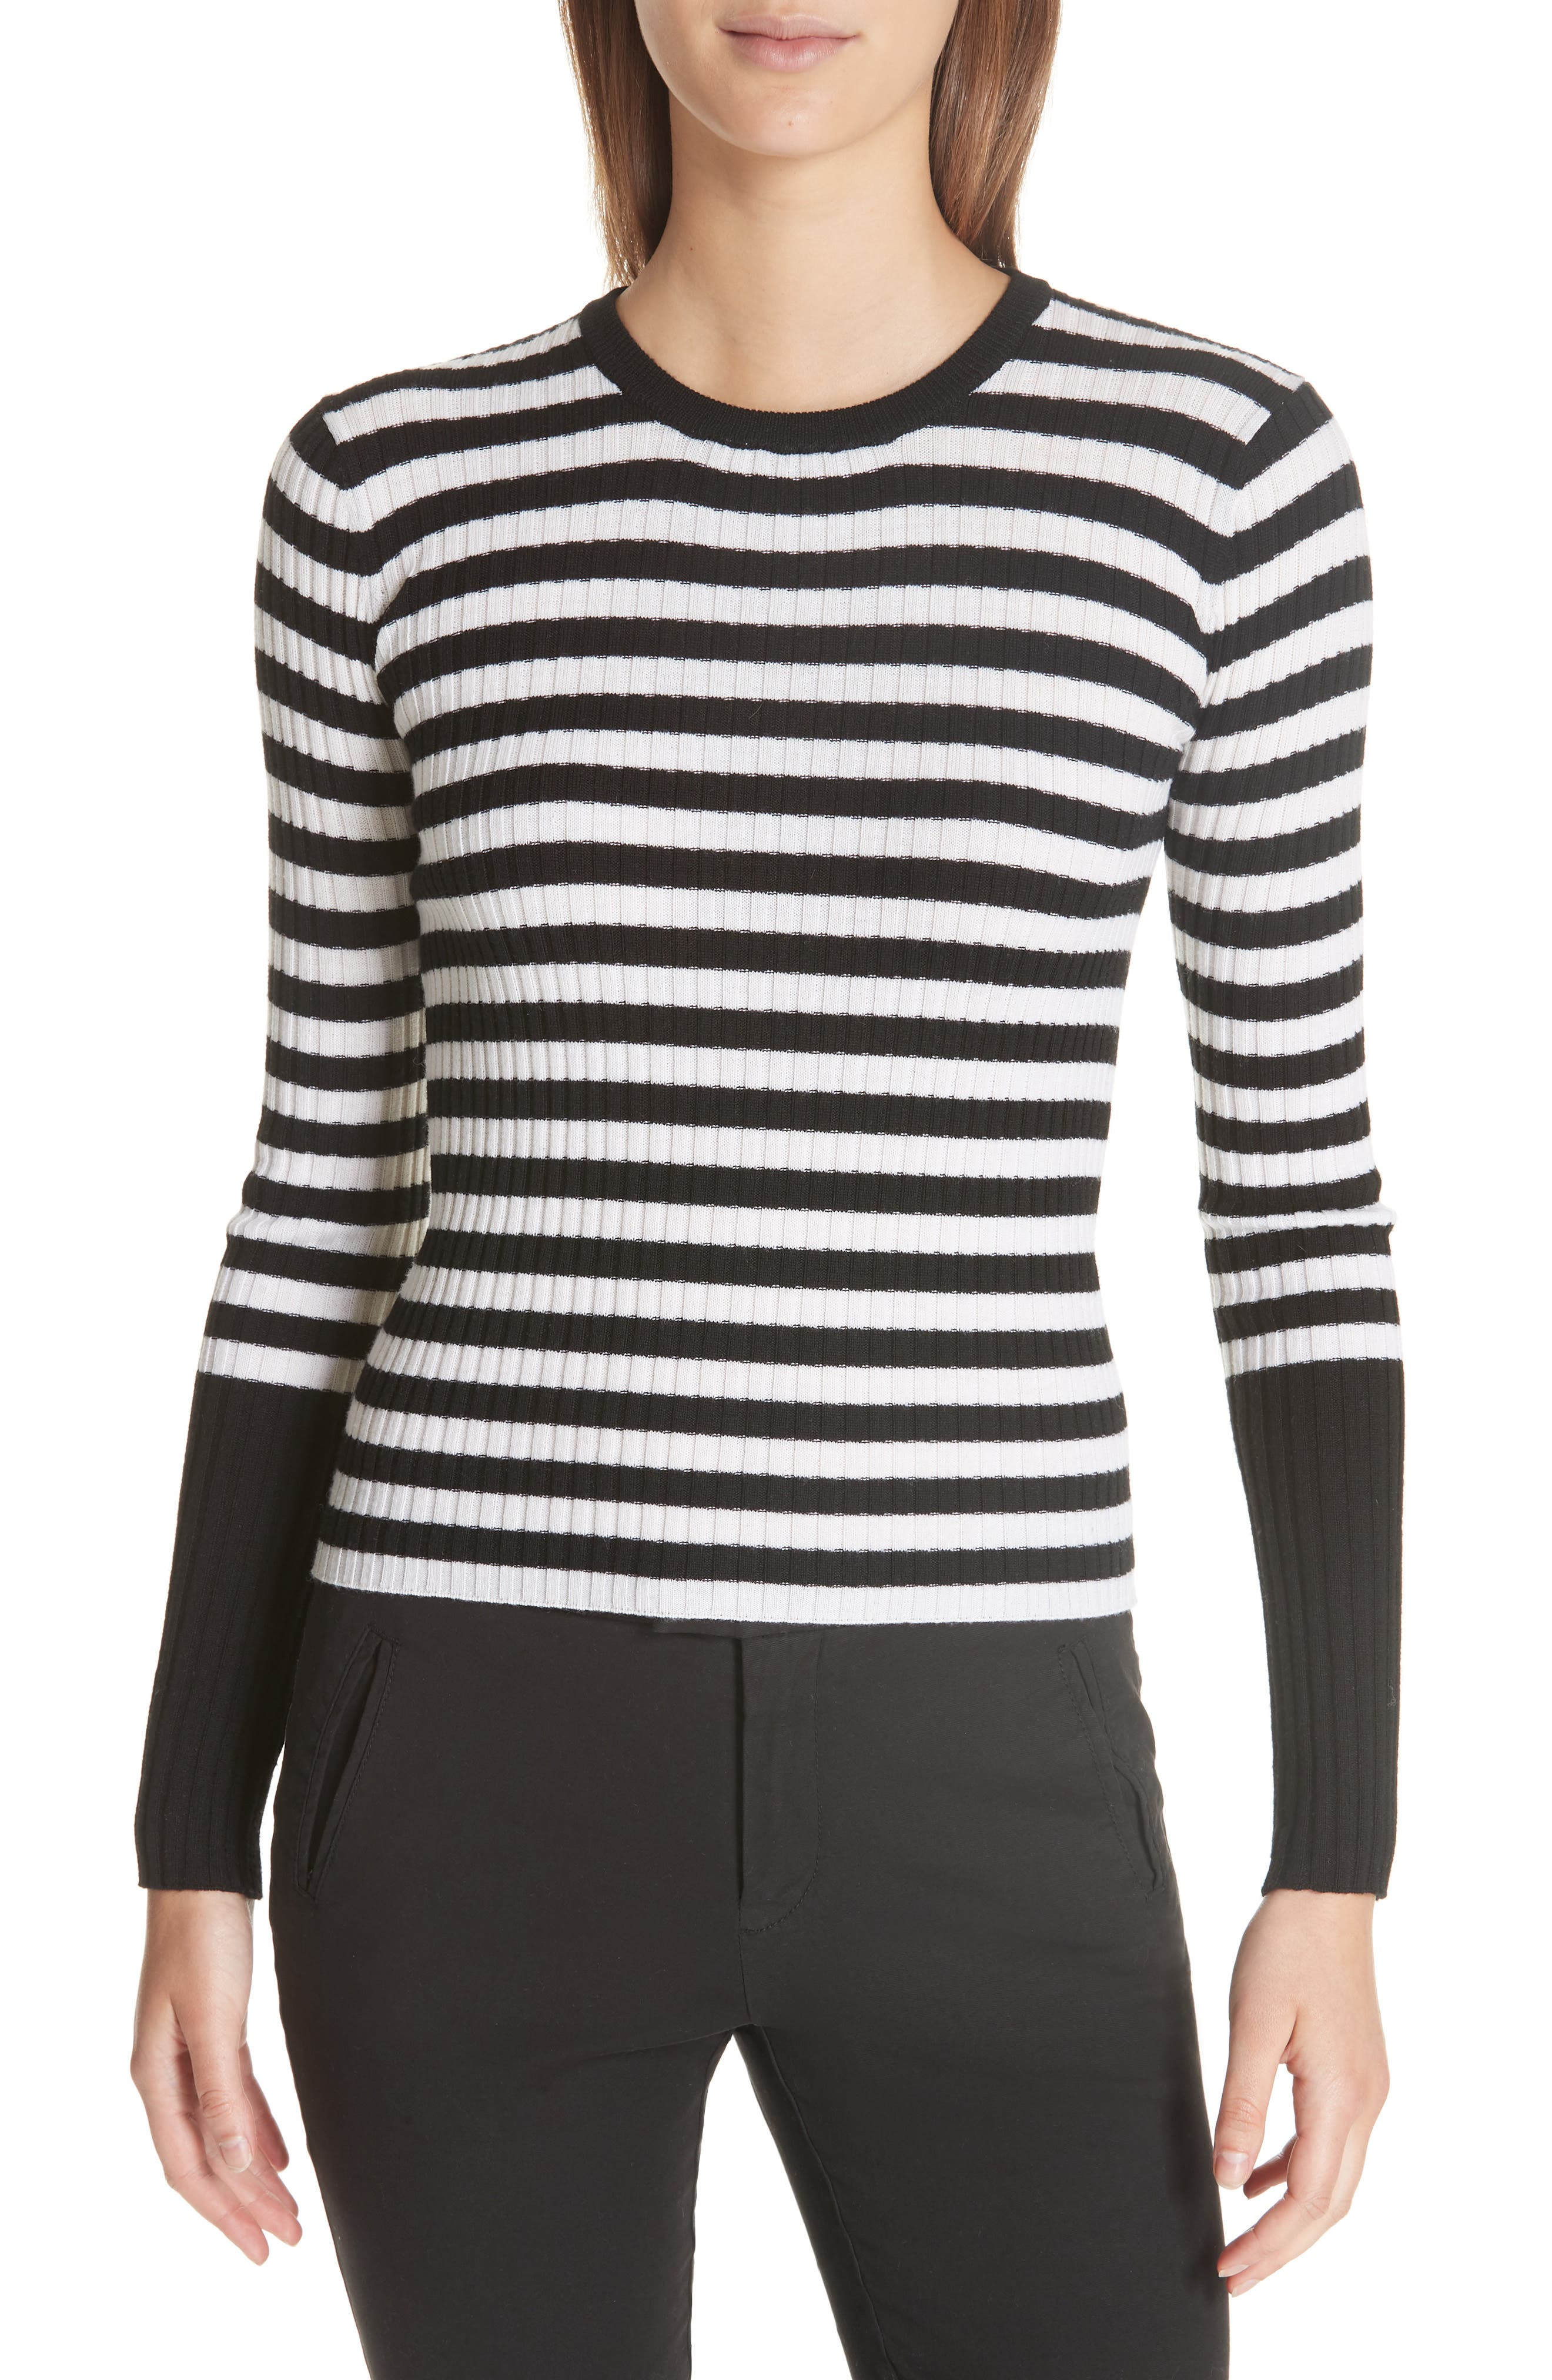 Stripe Rib Merino Wool Sweater,                             Main thumbnail 1, color,                             BLACK/ WHITE STRIPE